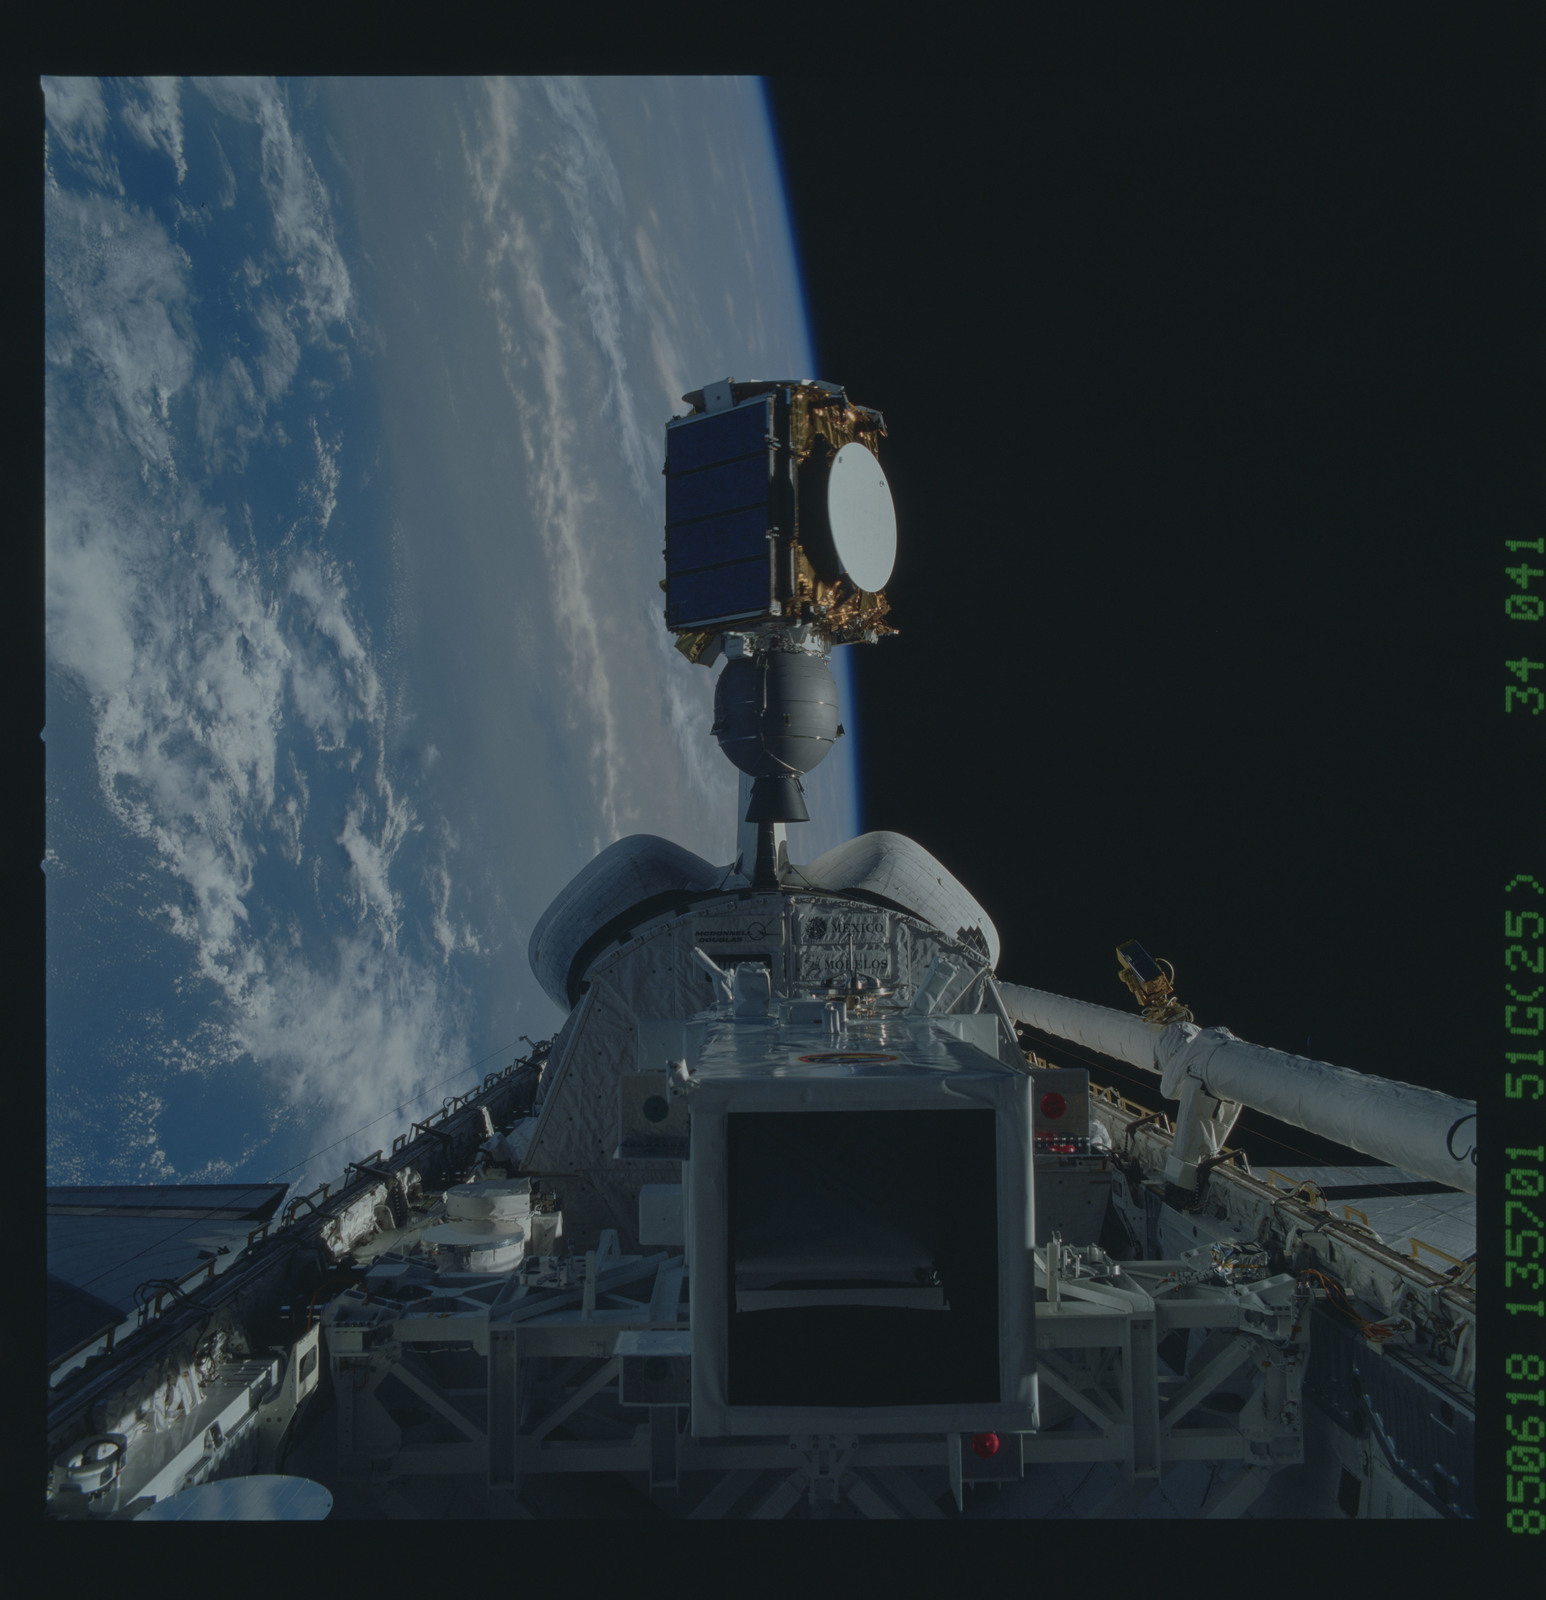 51G-34-041 - STS-51G - Arabsat communication satellite deploys from the payload by